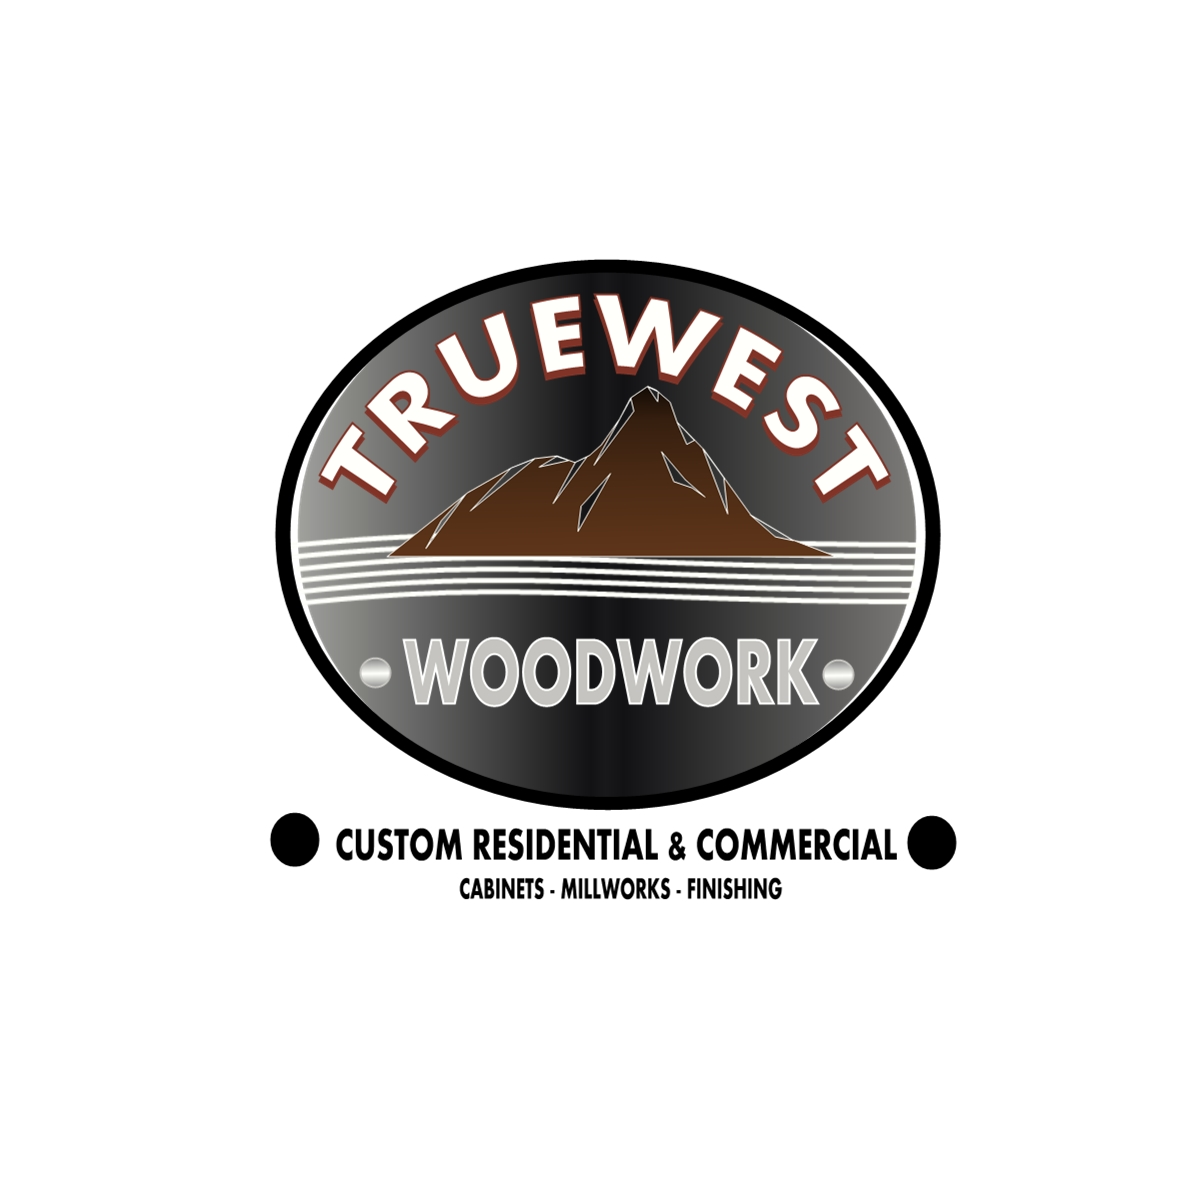 Logo Design by Joseph calunsag Cagaanan - Entry No. 35 in the Logo Design Contest True West Woodwork.